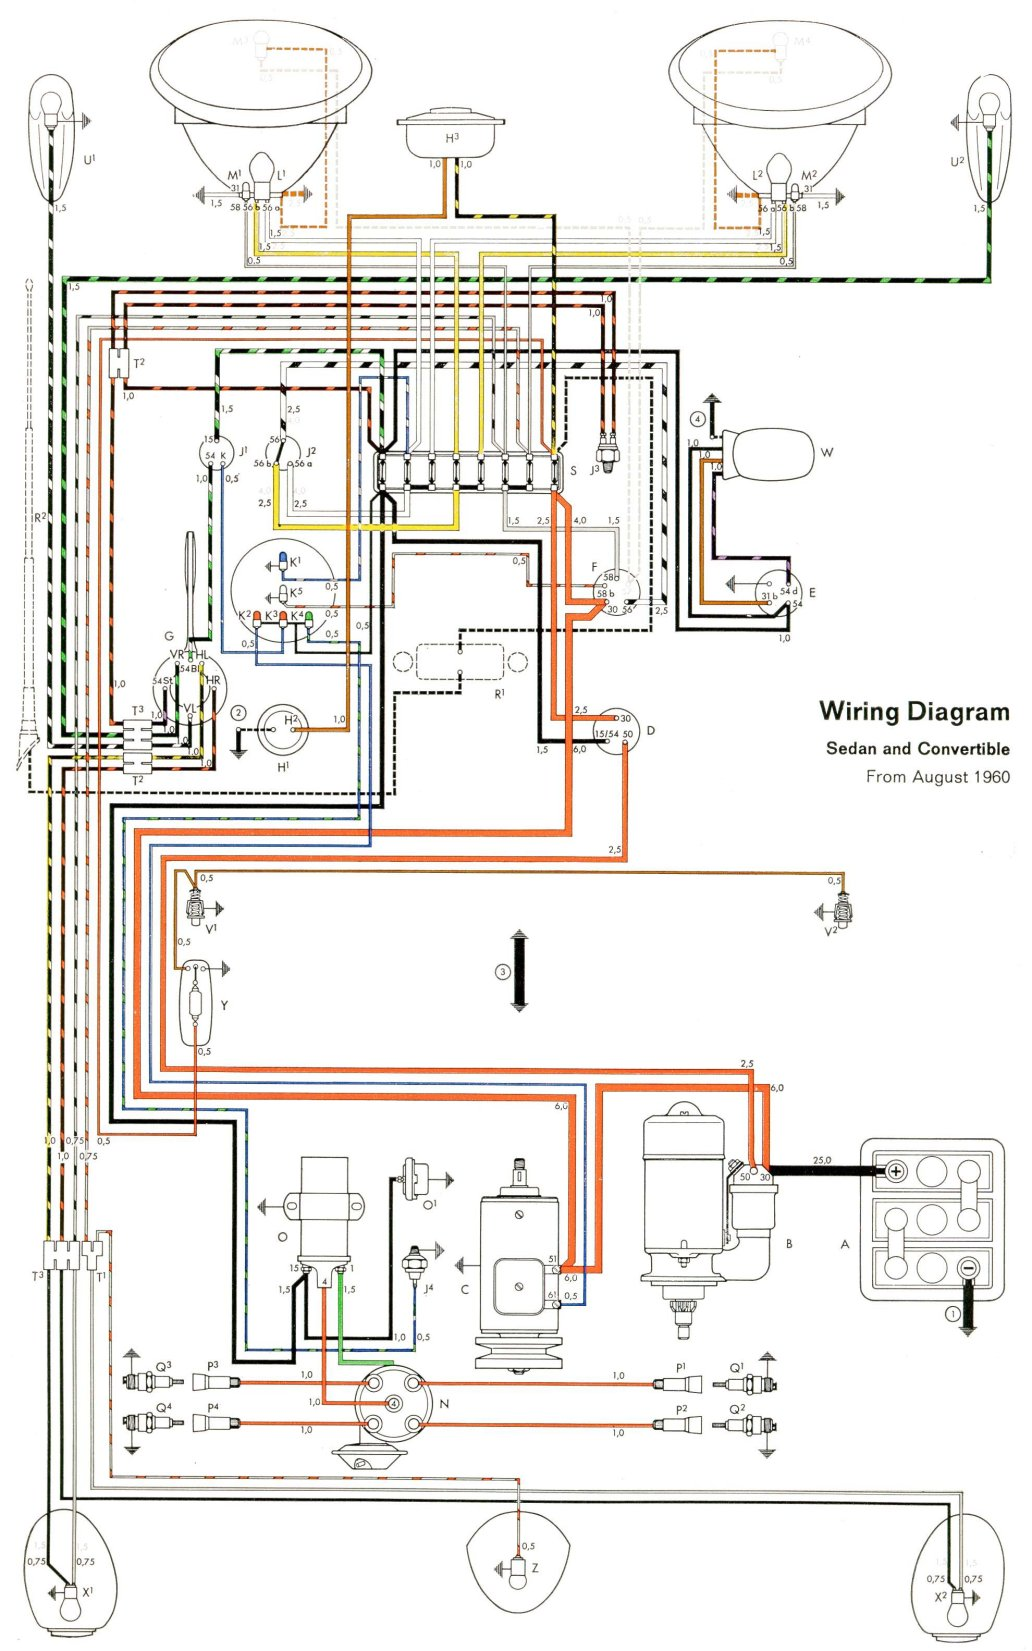 Vw Wiring Harness Diagram Will Be A Thing 01 Jetta Stereo Thesamba Com Type 1 Diagrams Rh Bug Volkswagen Radio